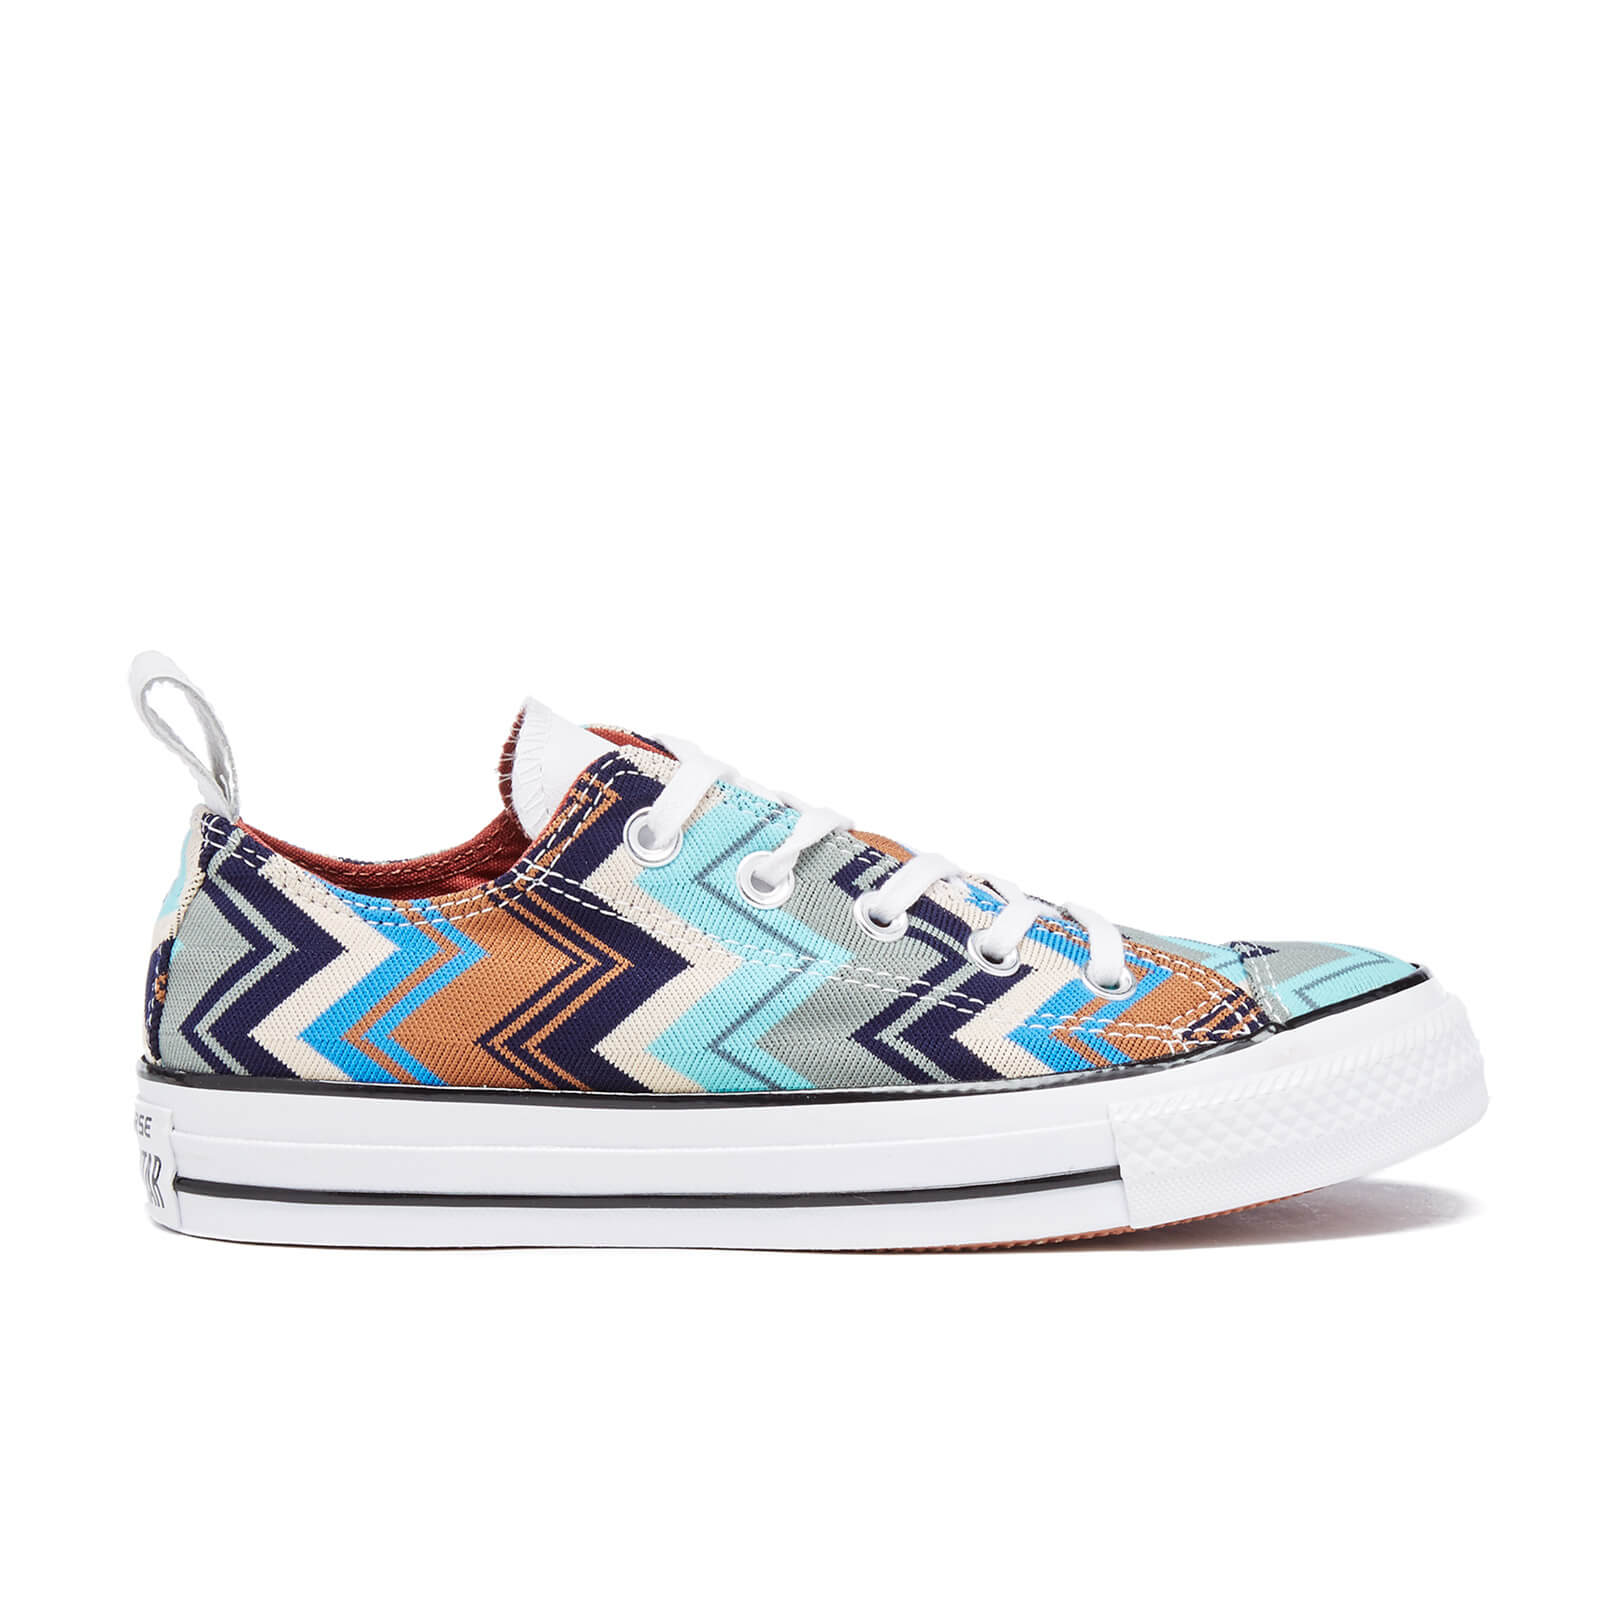 402d66abdae9 Converse X Missoni Women's Chuck Taylor All Star Ox Trainers - Multi/Egret/Black  - Free UK Delivery over £50